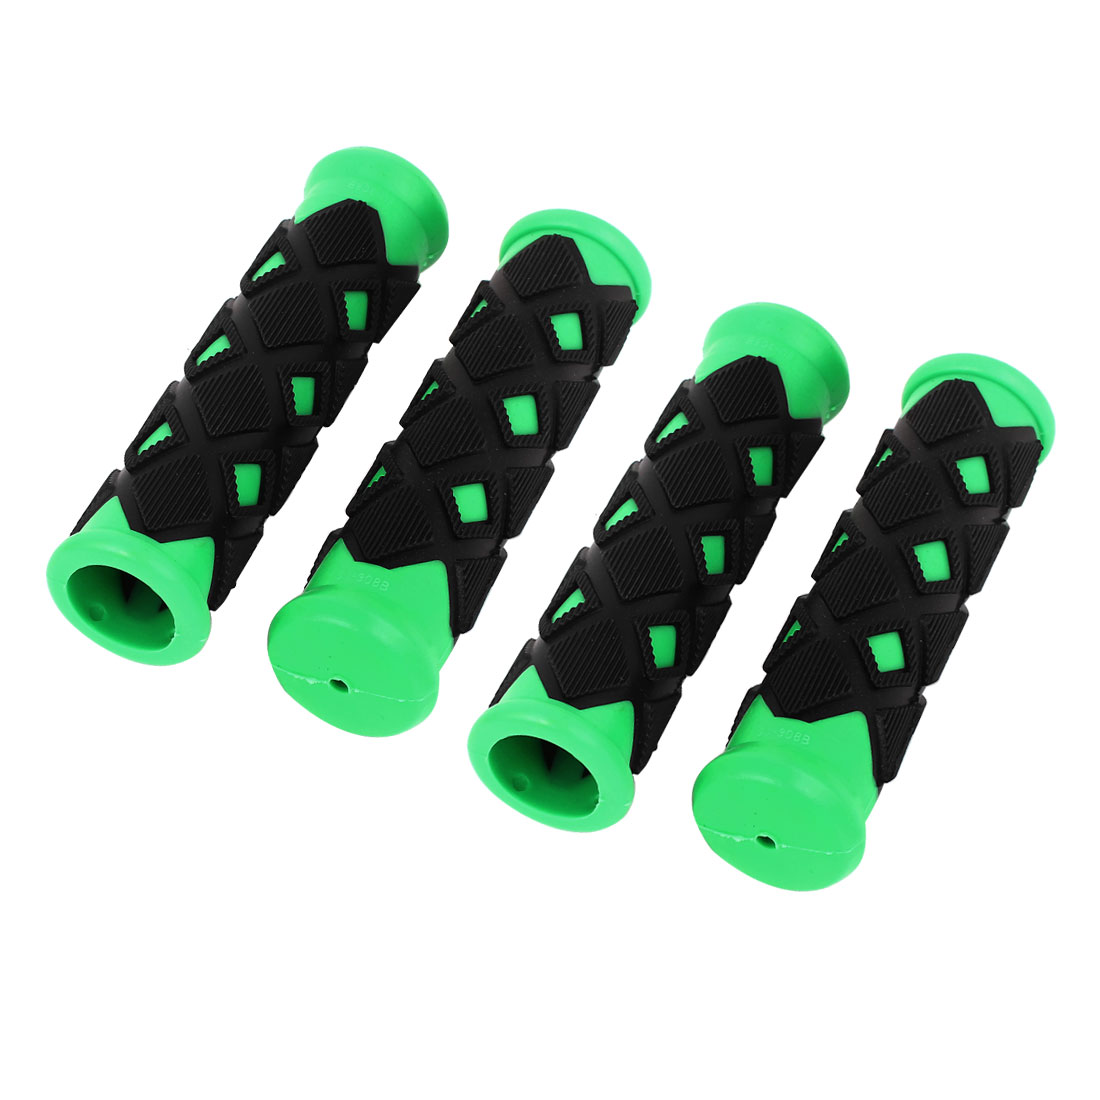 Lozenge Design Antislip Rubber Bike Handlebar Hand Grip Cover Black Green 4 Pcs